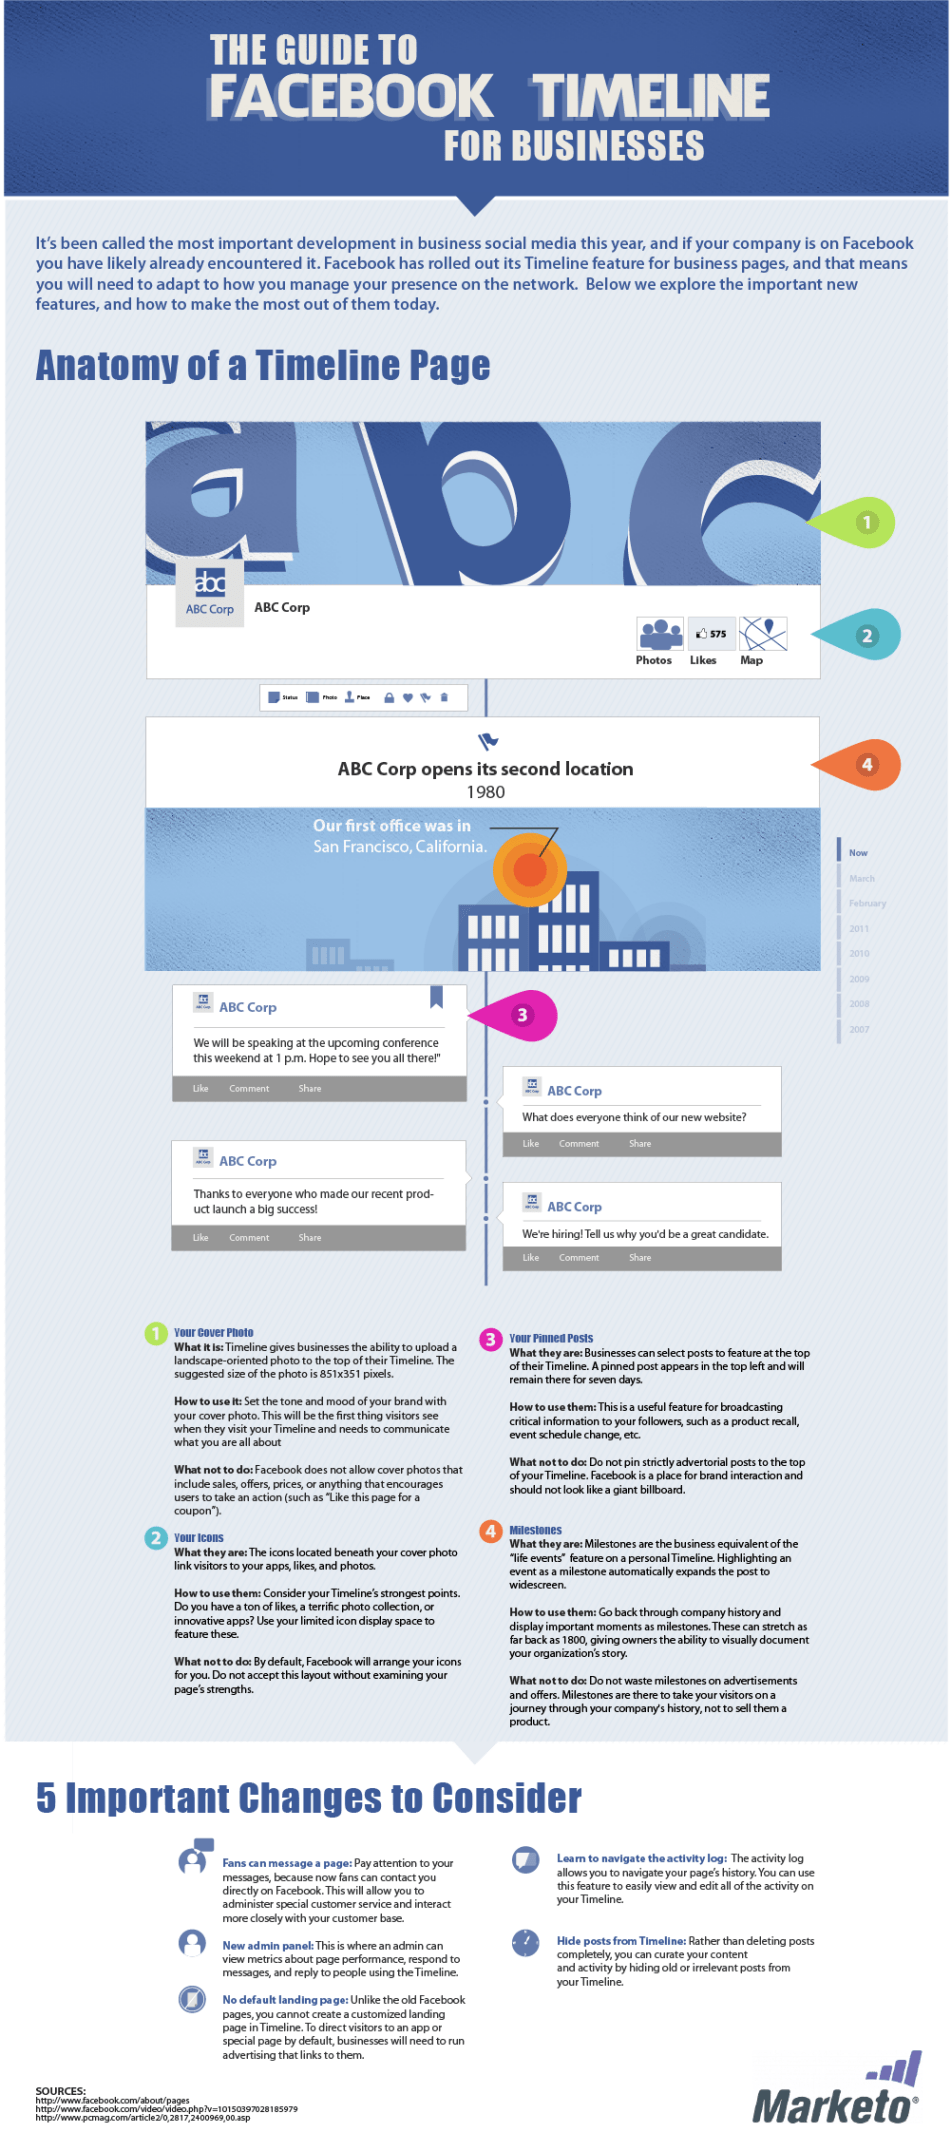 The Guide to Facebook Timeline for Businesses Infographic by Marketo